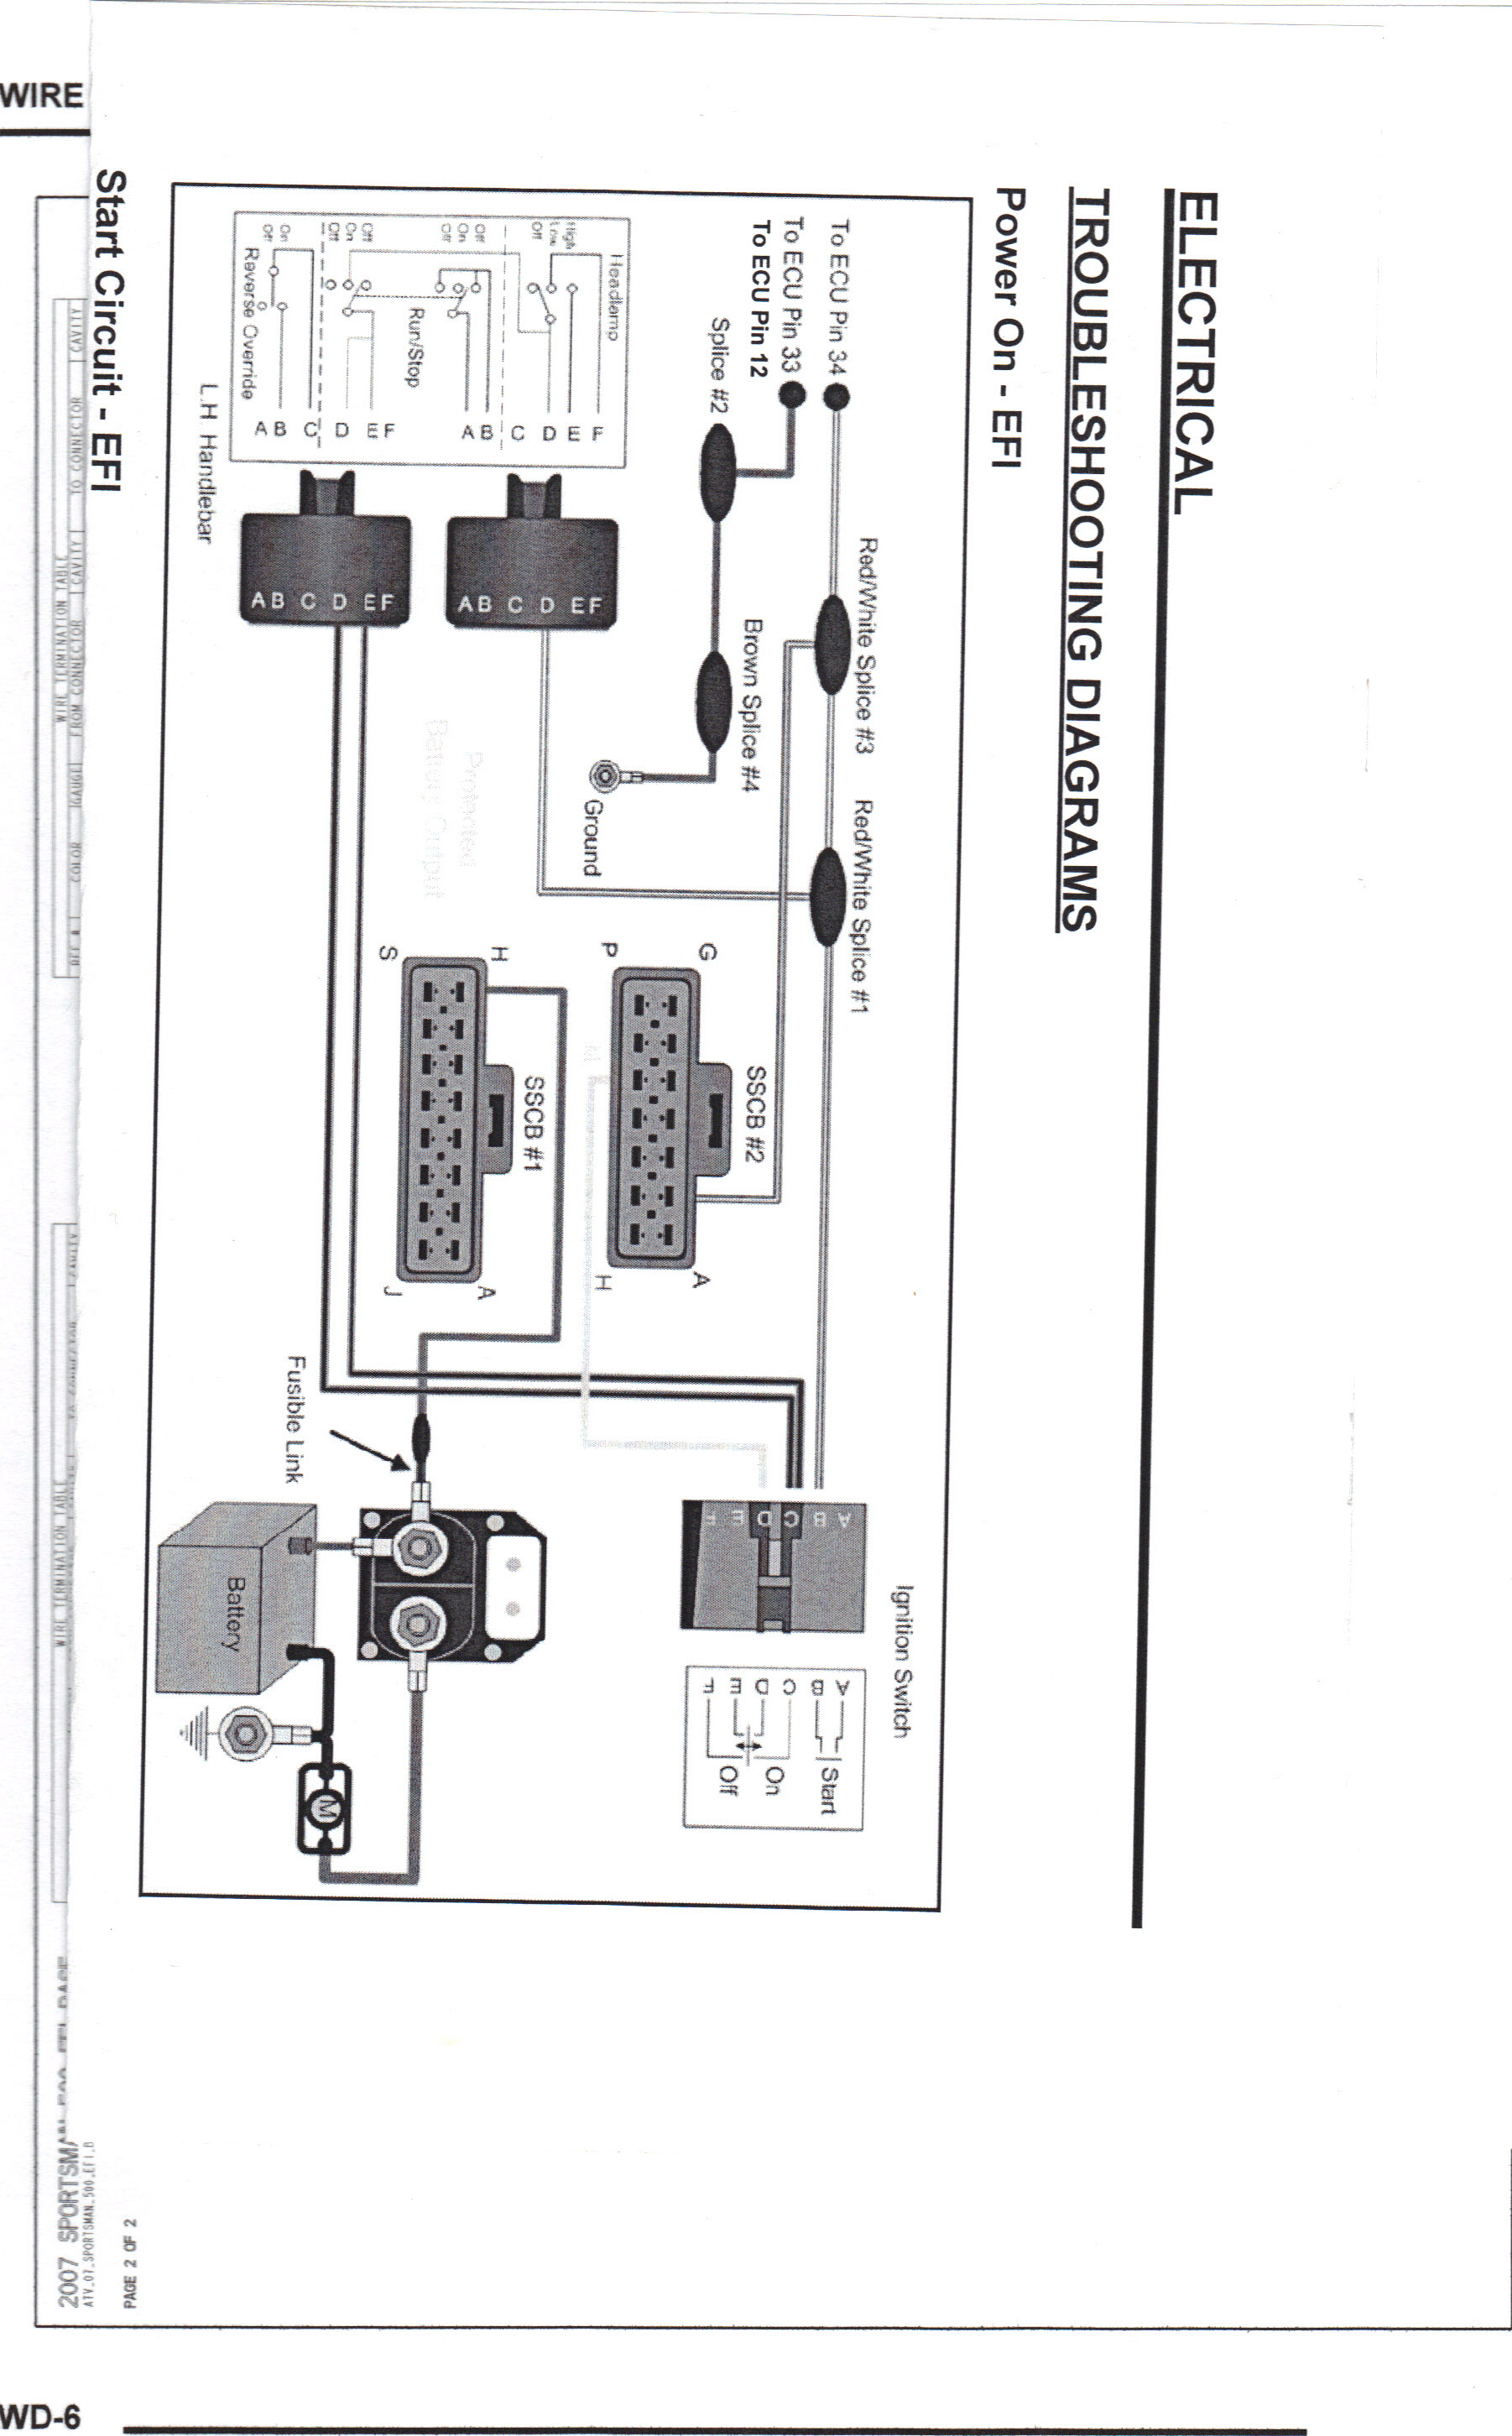 2004 polaris sportsman 400 wiring diagram sample rh wholefoodsonabudget com  2005 polaris sportsman 400 electrical schematic